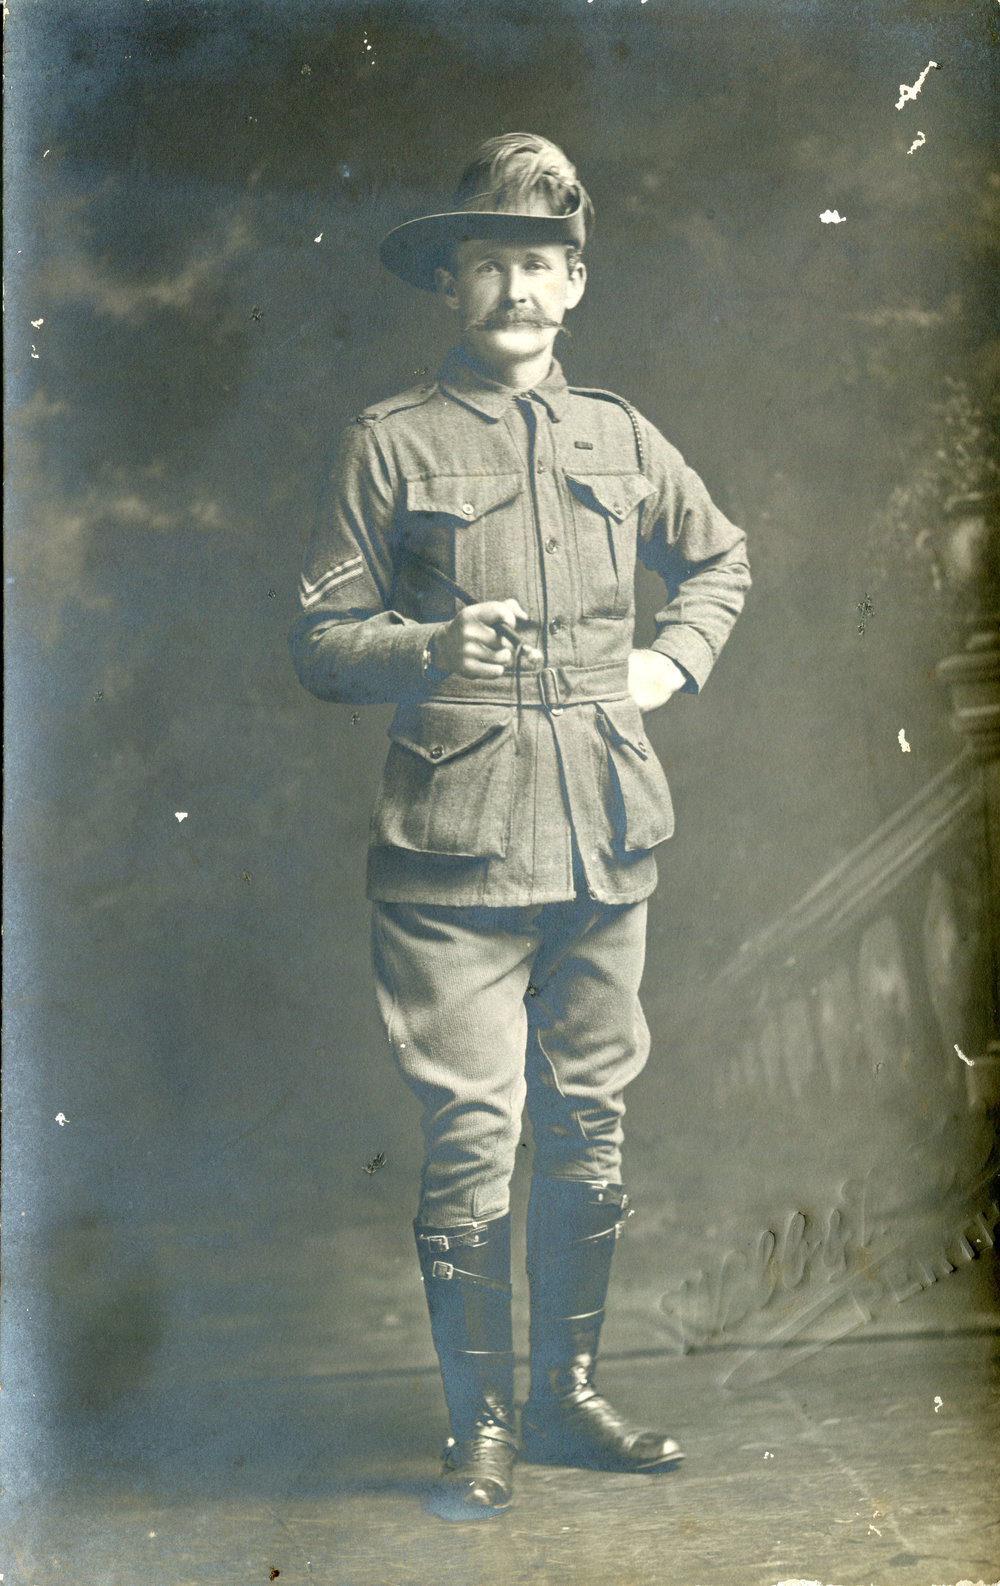 May's uncle, 10th Light Horse Regiment Corporal Malcolm 'Mick' McSwain returned with Reg.